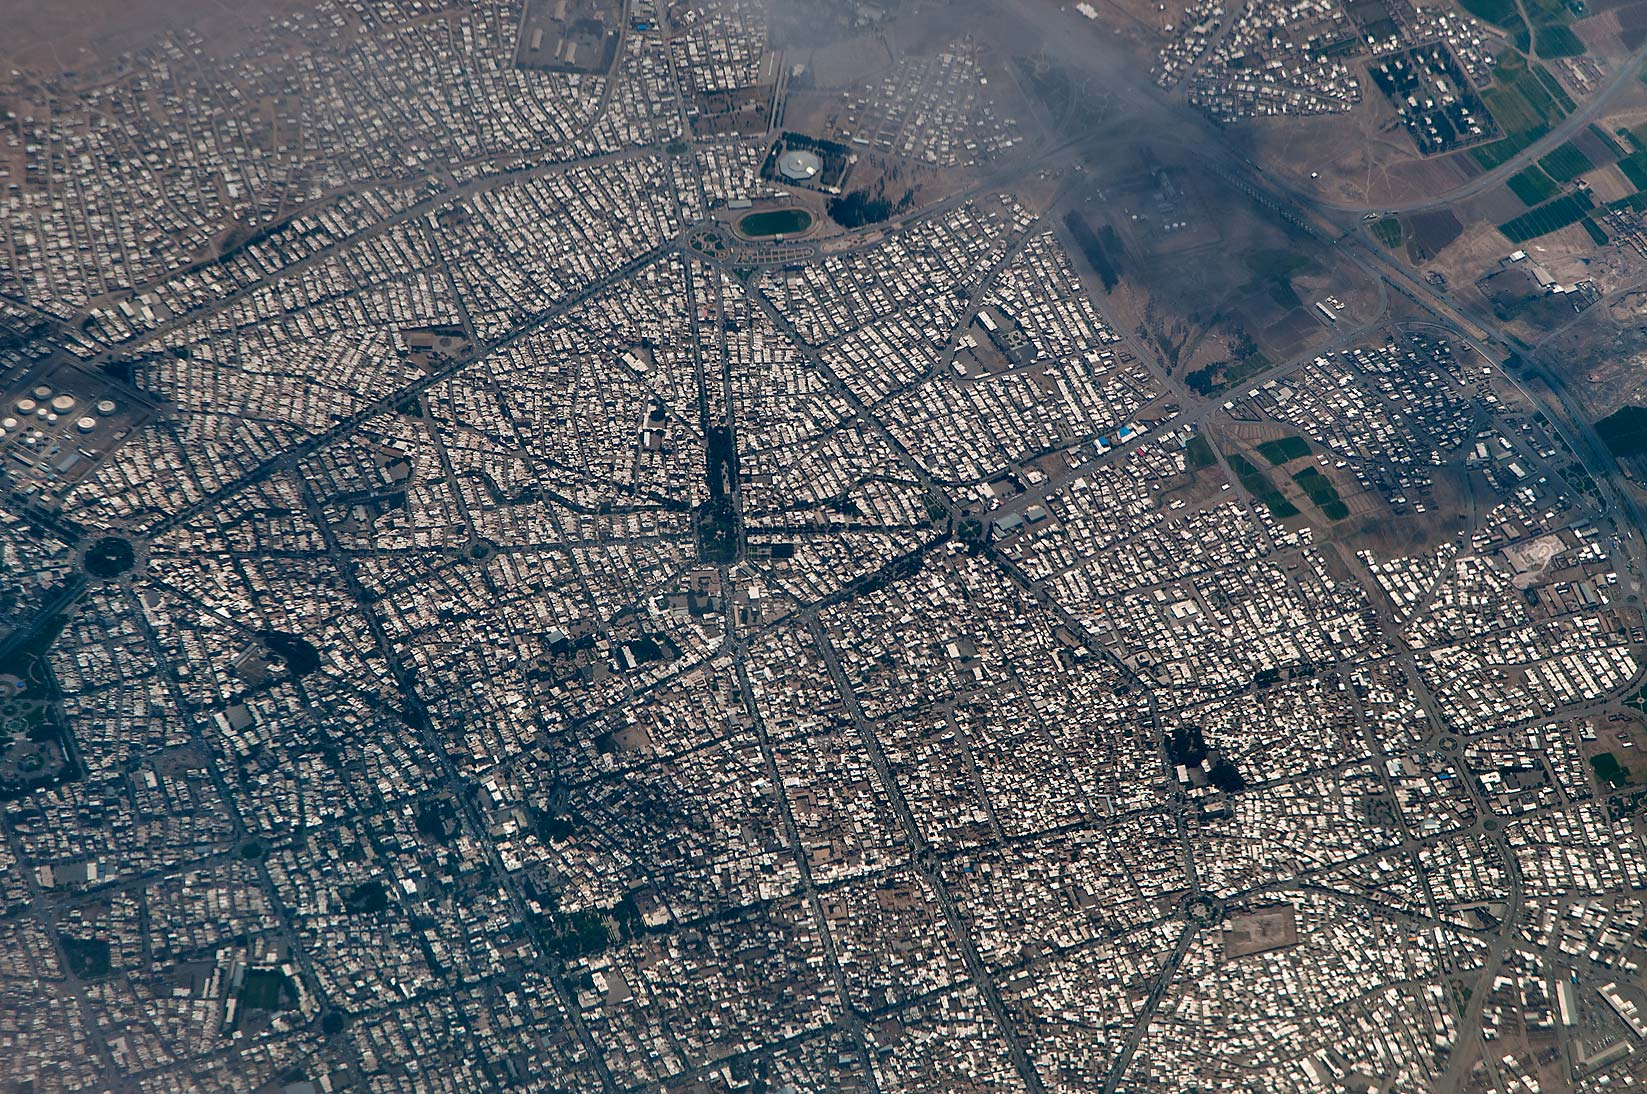 A city in Iran, near Mashhad. View from a window of a plane from Dubai, UAE to Houston, TX